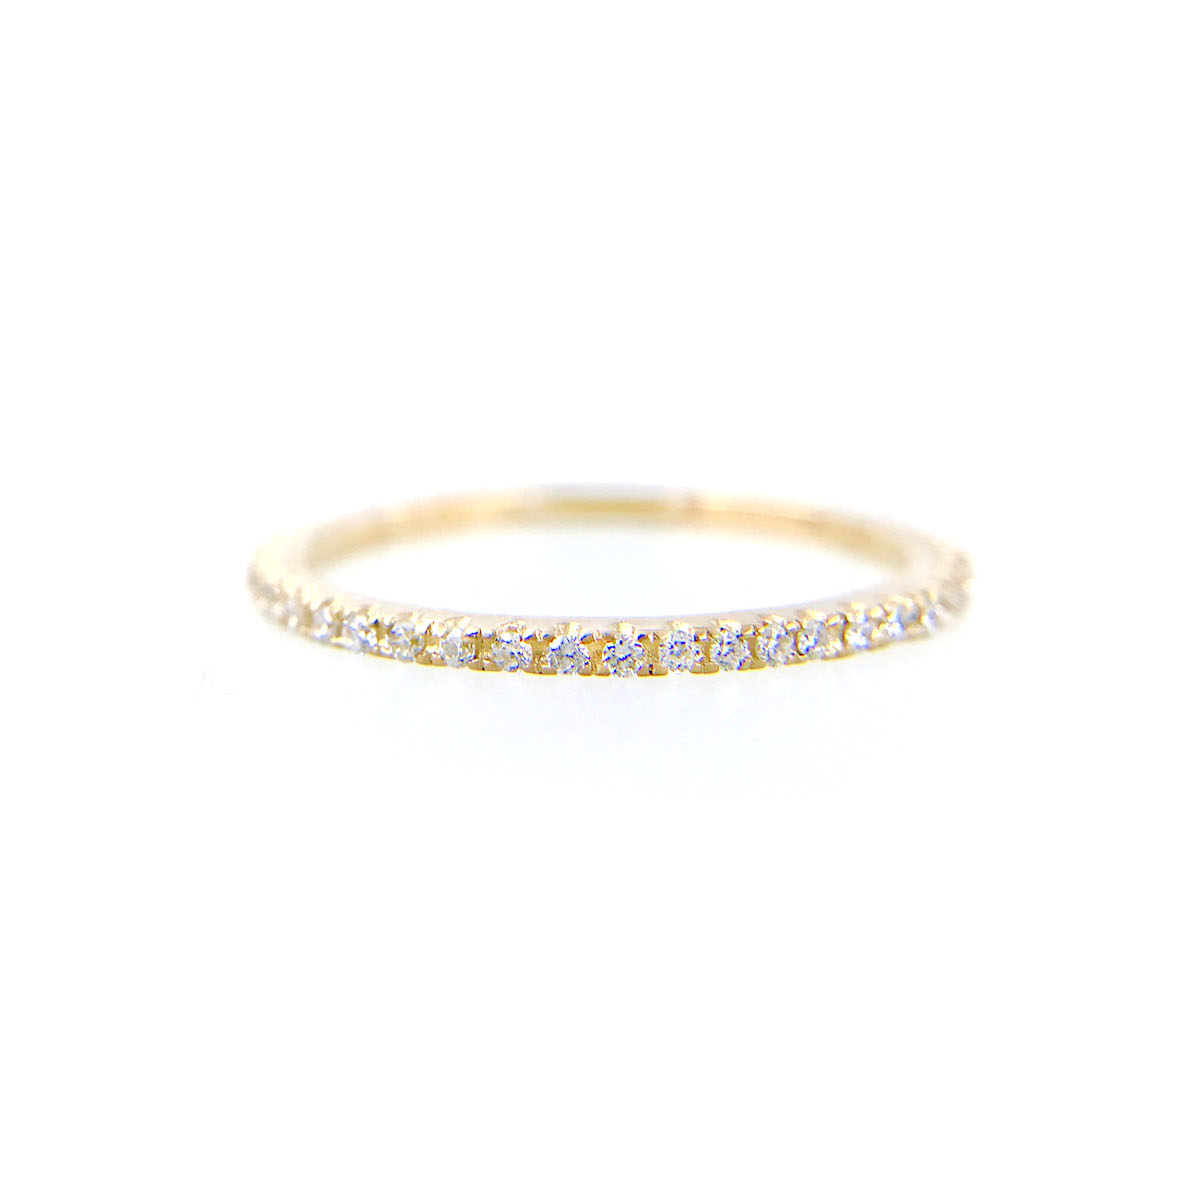 Slim-1mm-Micro-Pavé-Diamond-Eternity-Band-Ring-Guard-Spacer-14K-18K-YELLOW-WHITE-ROSE_4395W